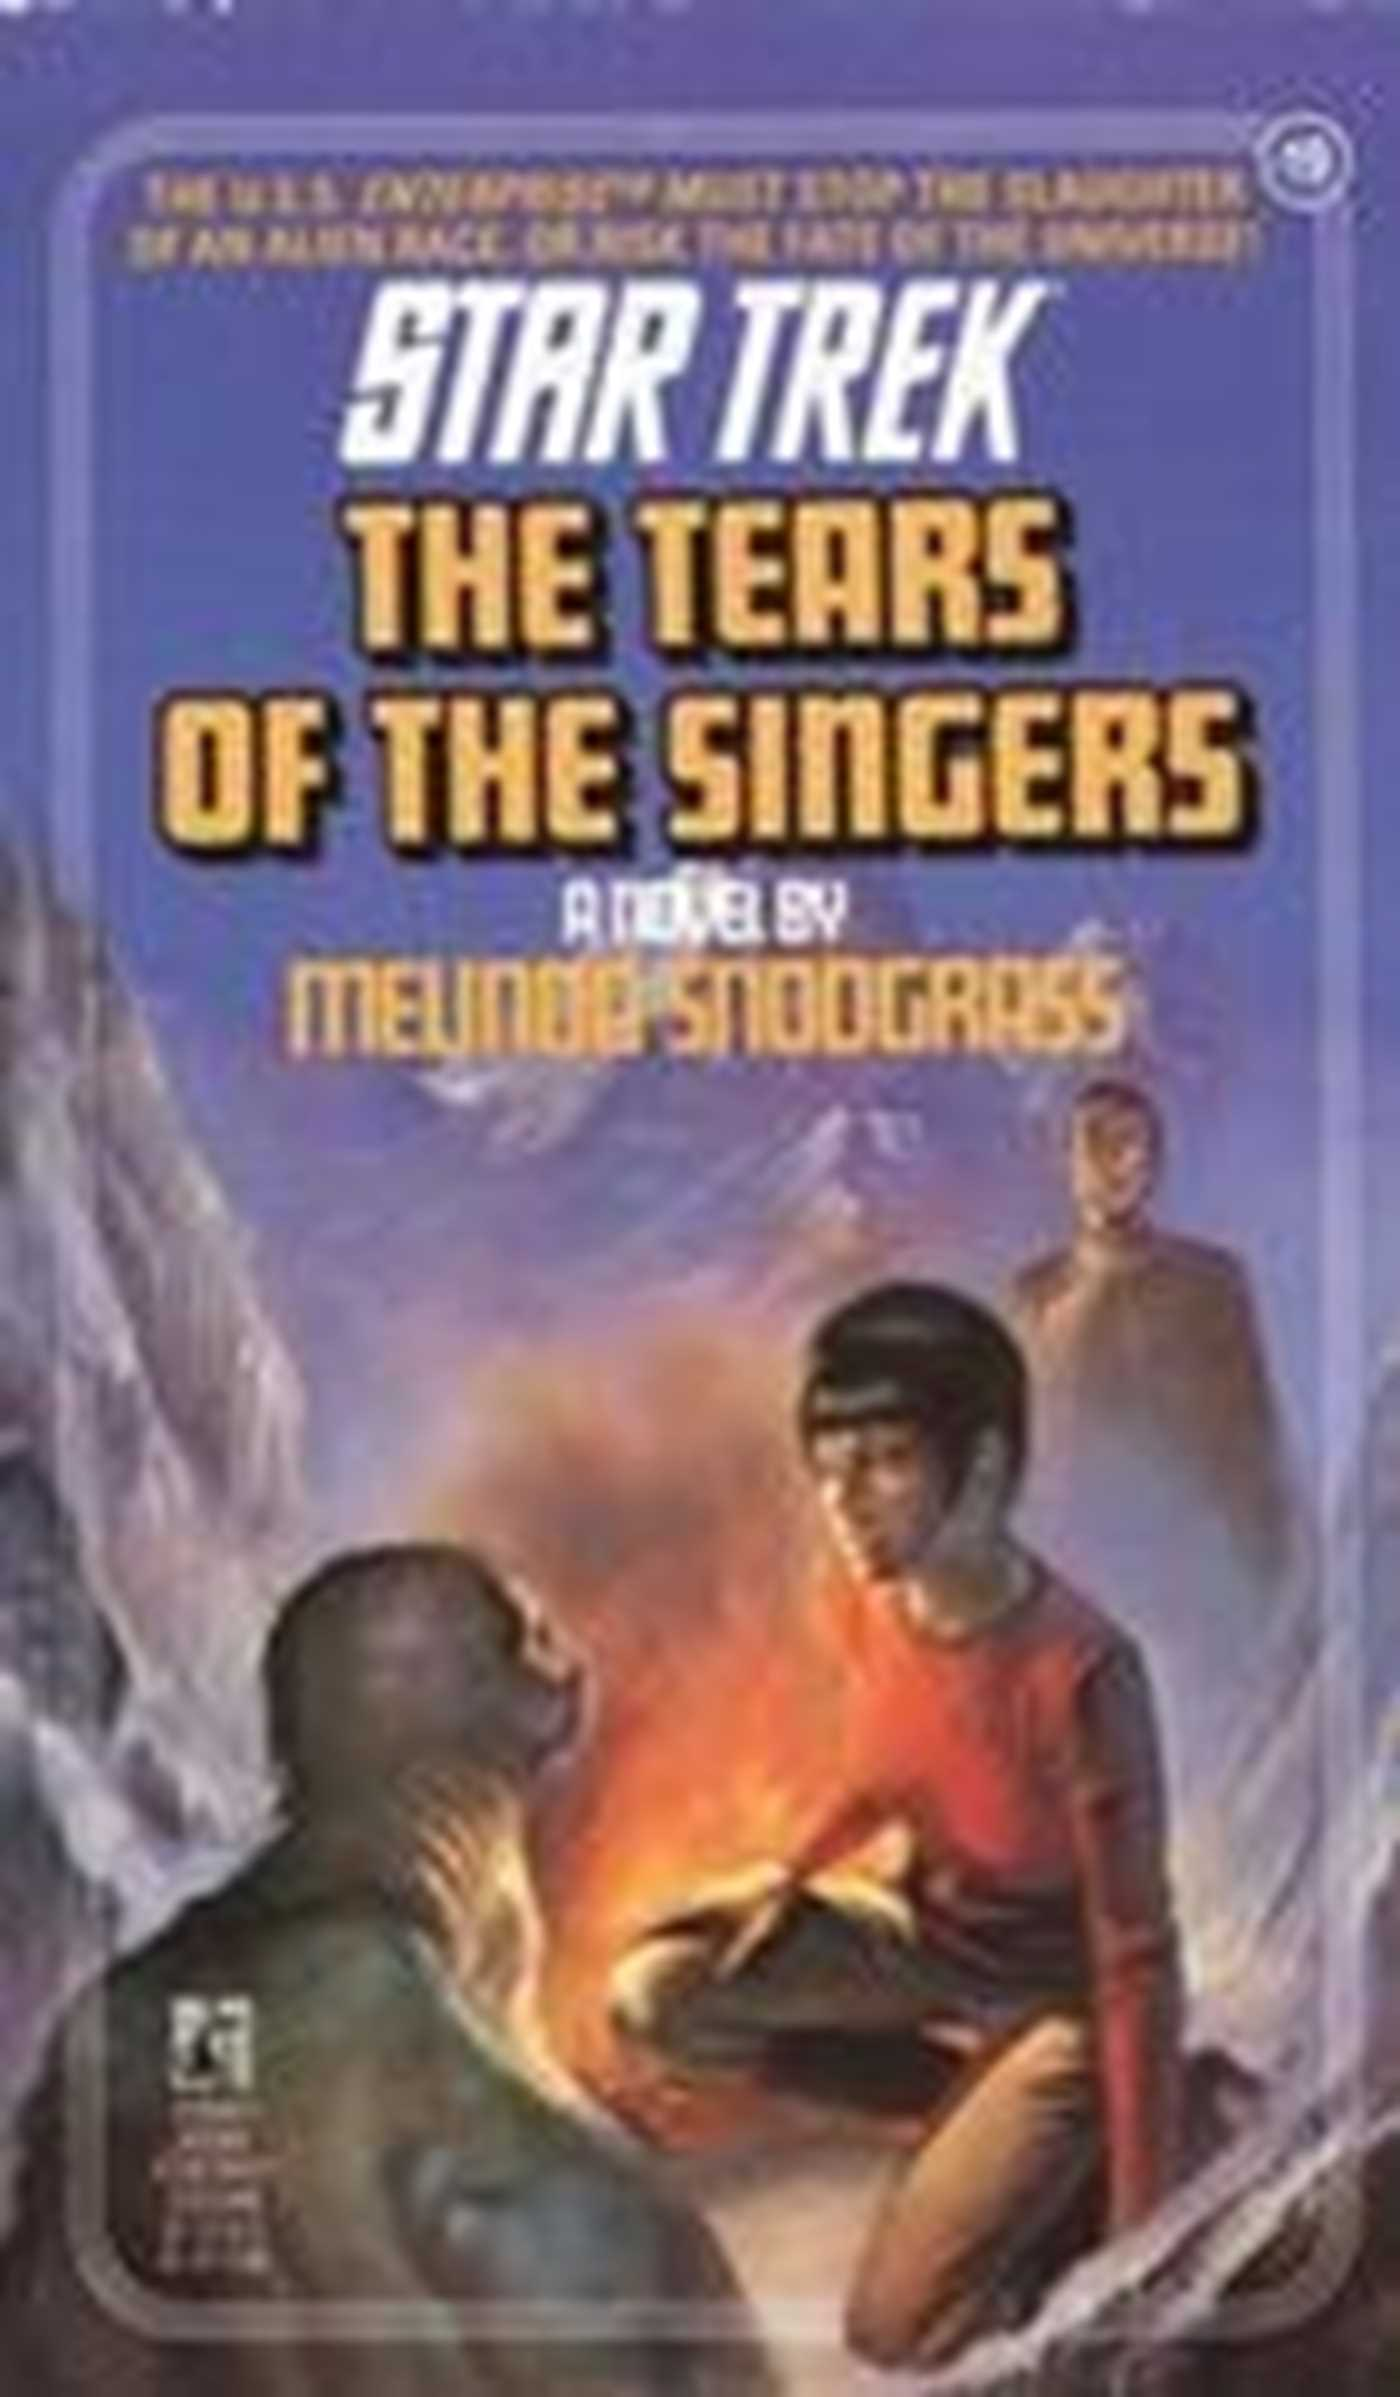 The tears of the singers 9780743419703 hr